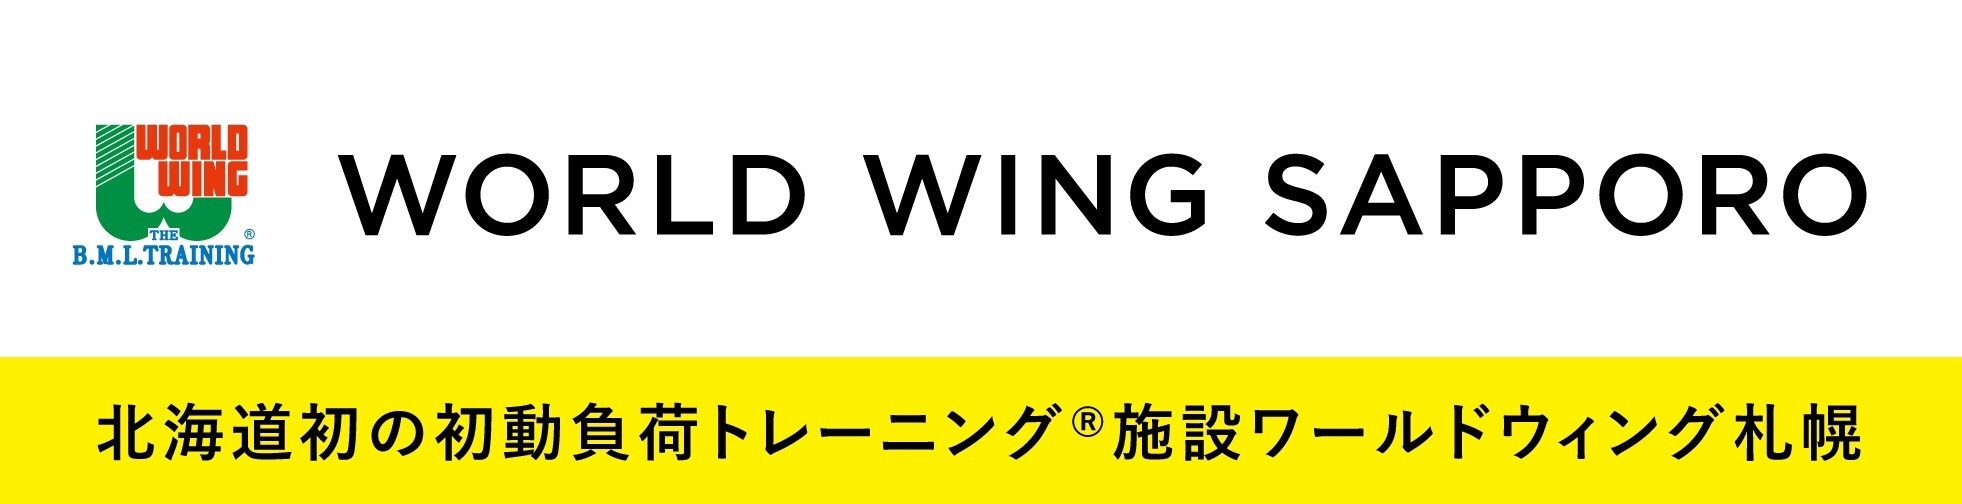 WORLD WING SAPPORO